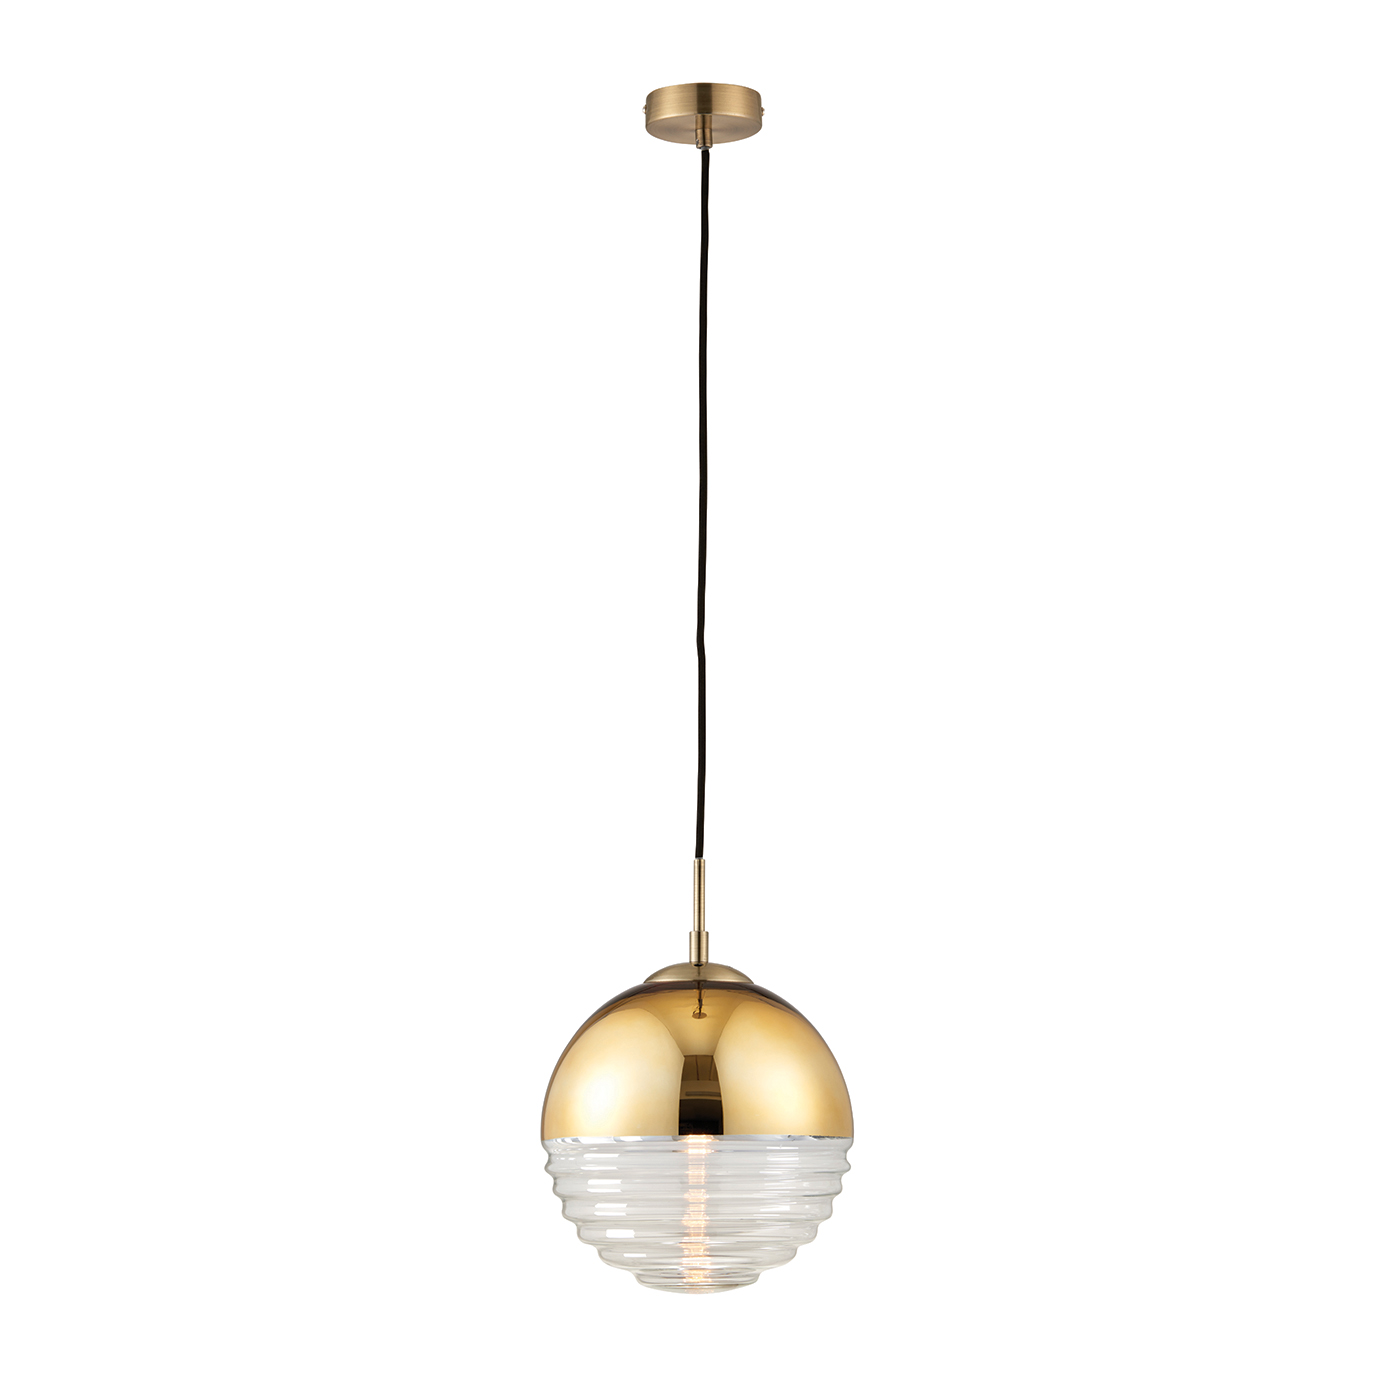 Endon Paloma pendant 1x 40W Gold effect & clear ribbed glass